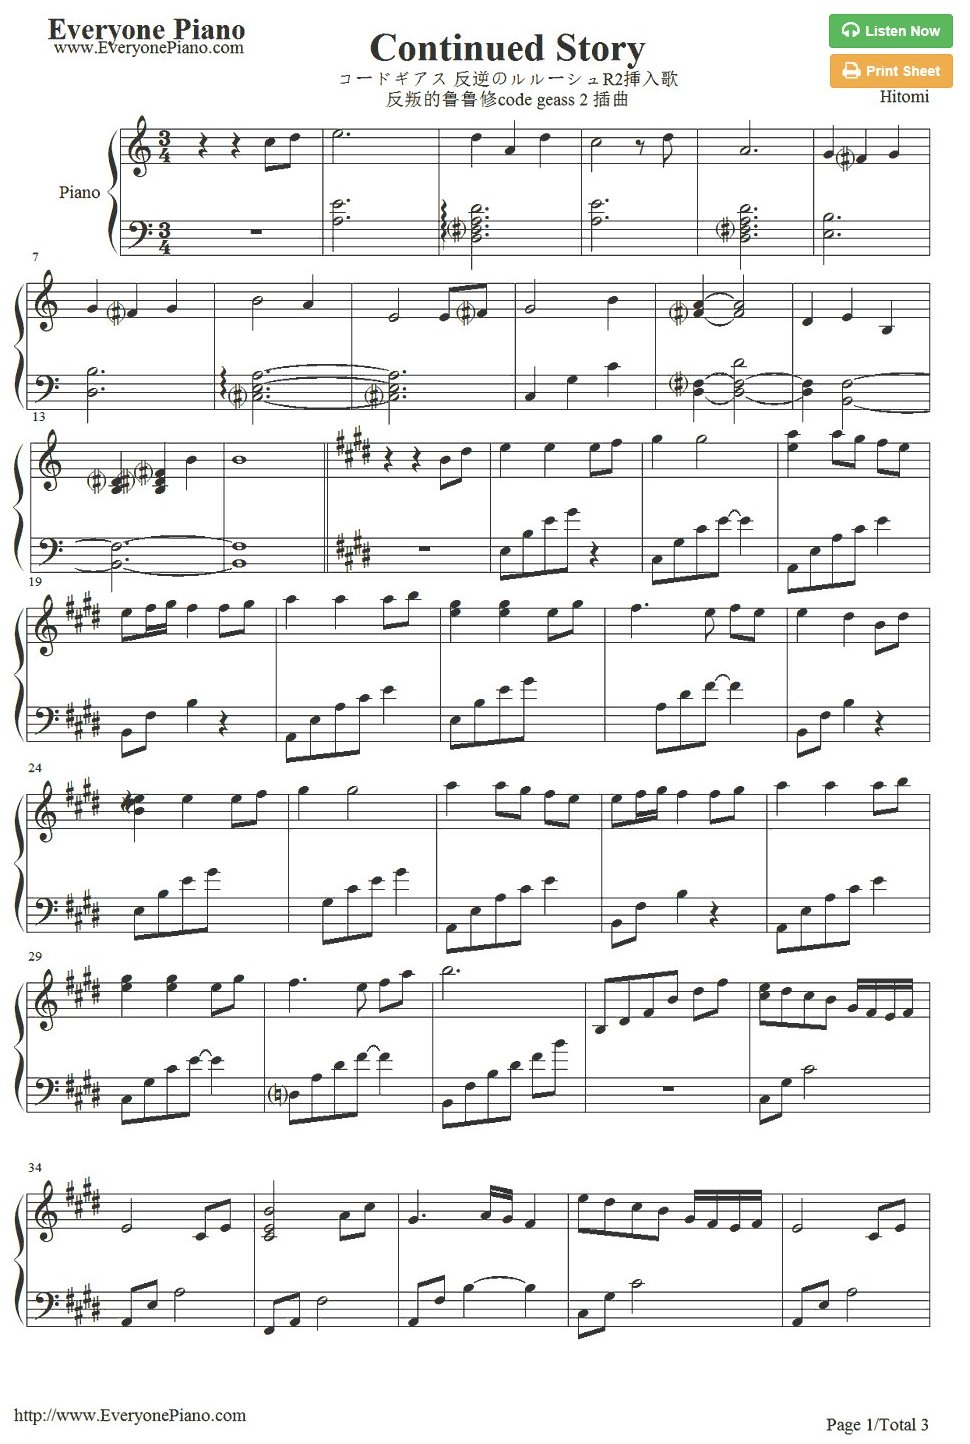 Continues Story from Code Geass (piano sheet music